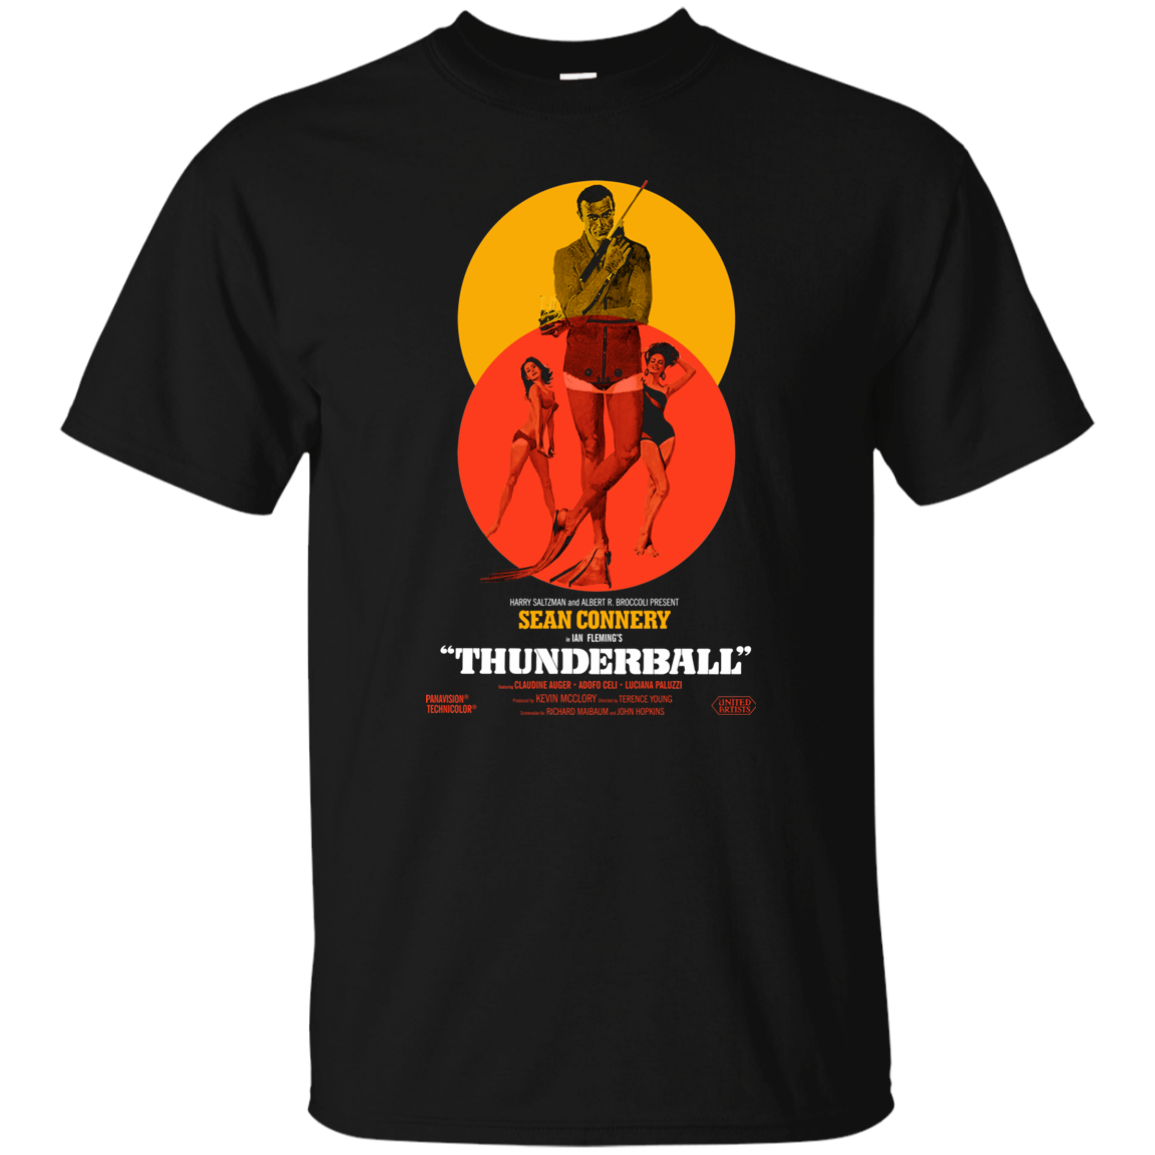 Thunderball James Bond <font><b>Sean</b></font> Connery Dr No Danish <font><b>T</b></font> <font><b>Shirt</b></font> image